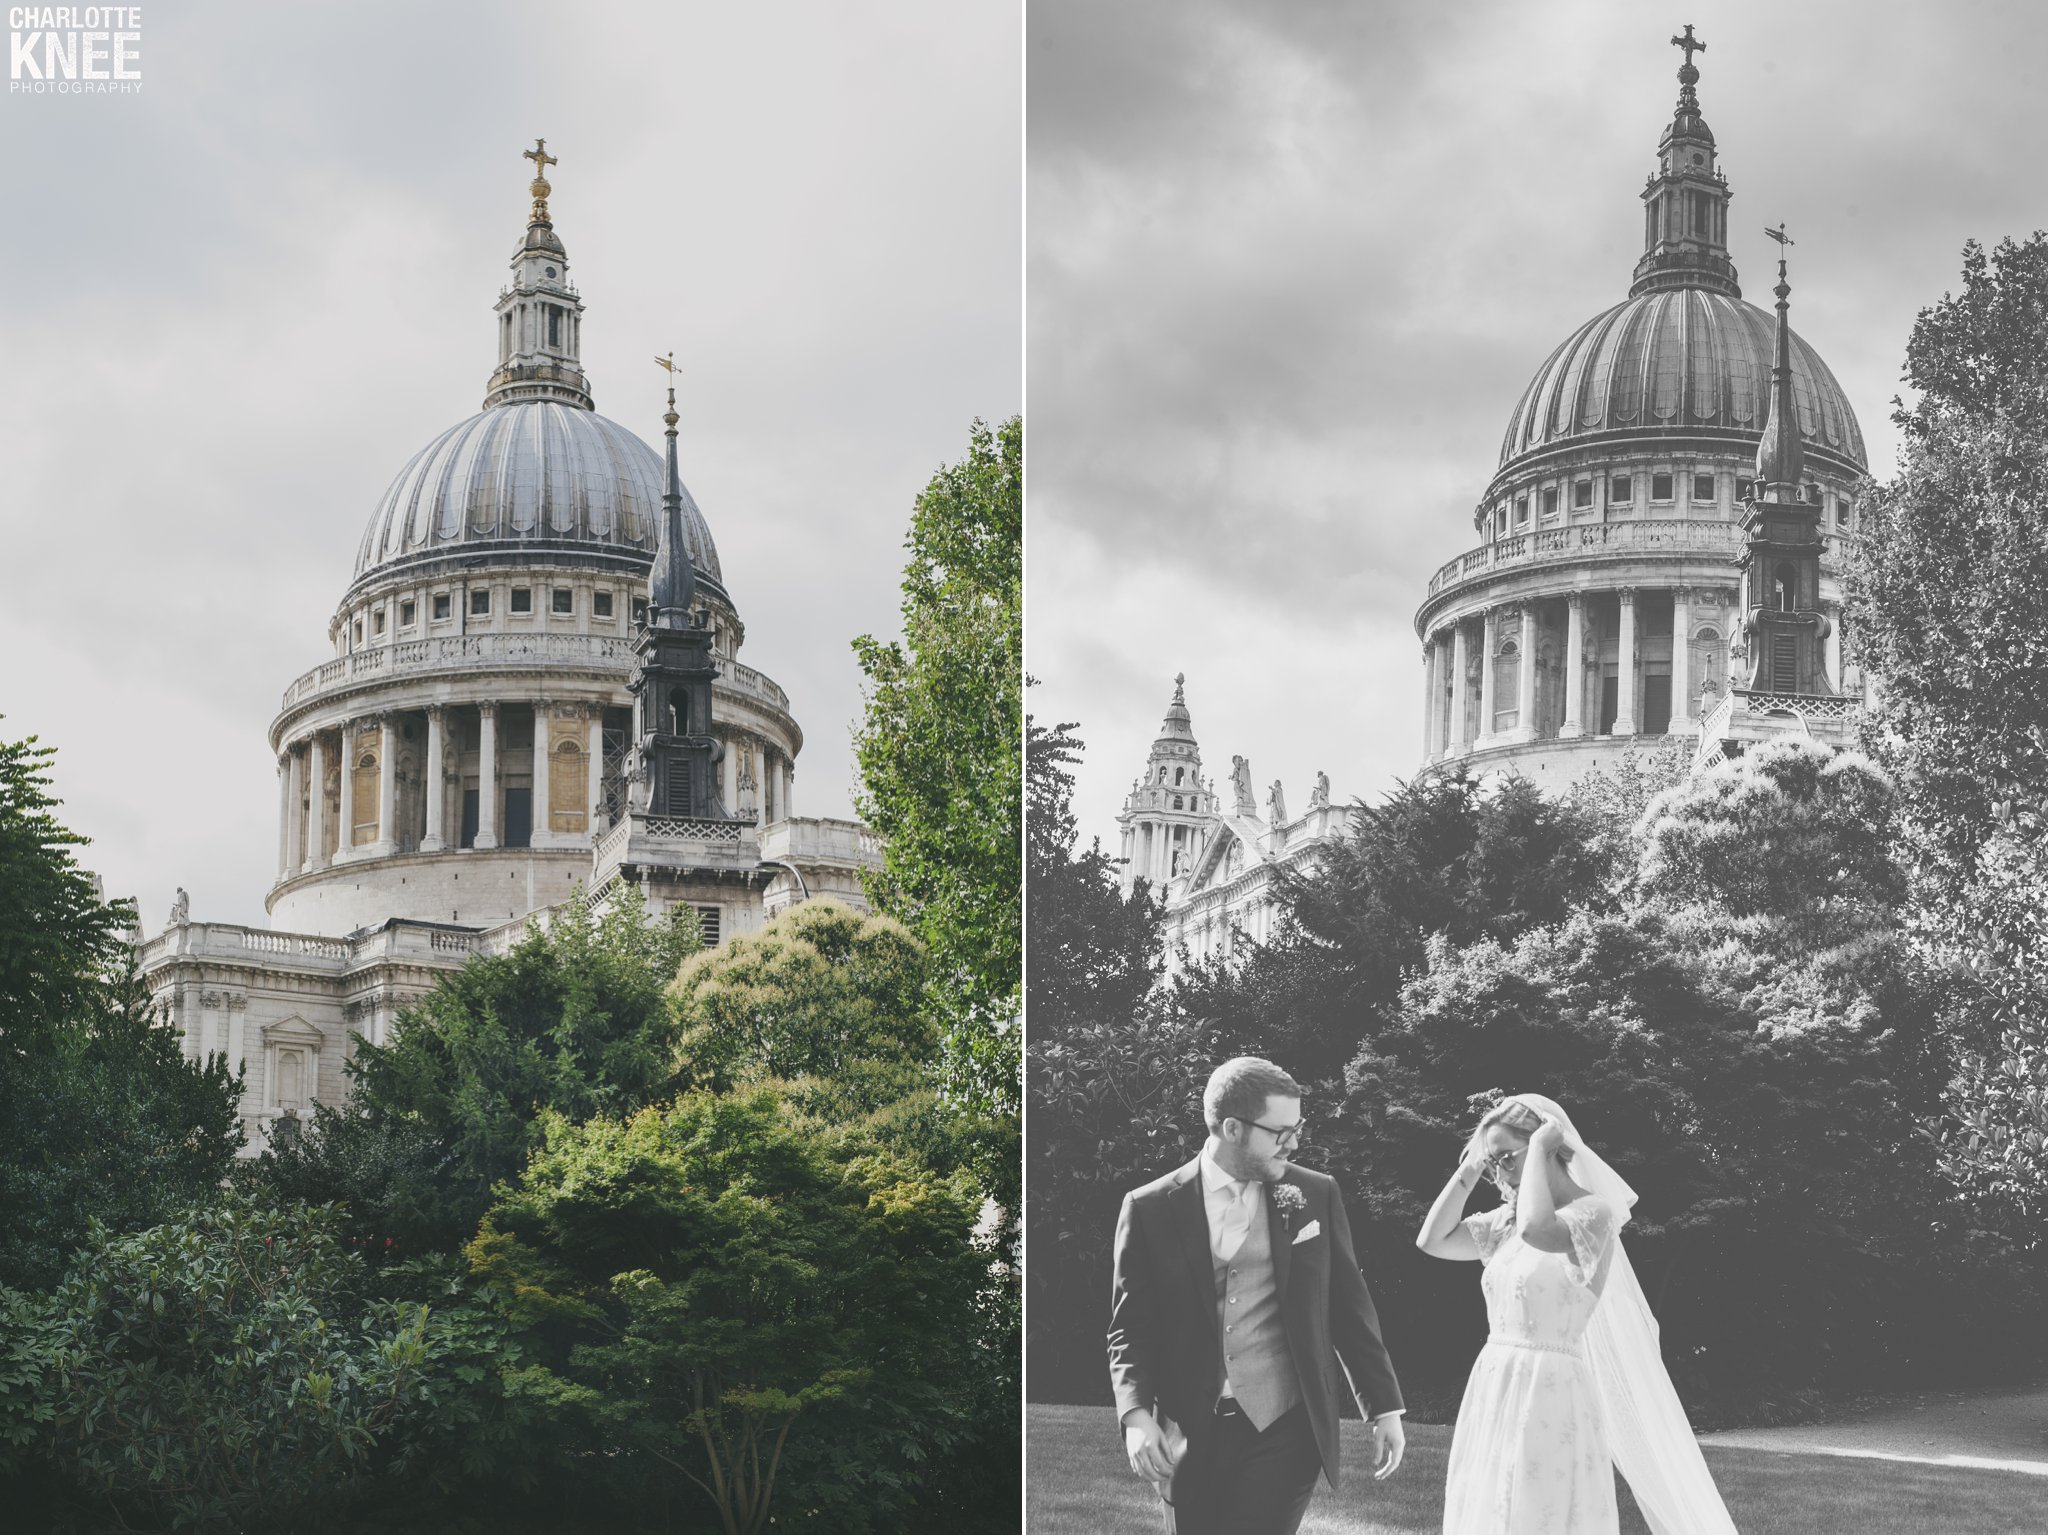 Saddlers Hall London Wedding Photography Copyright Charlotte Knee Photography_0127.jpg